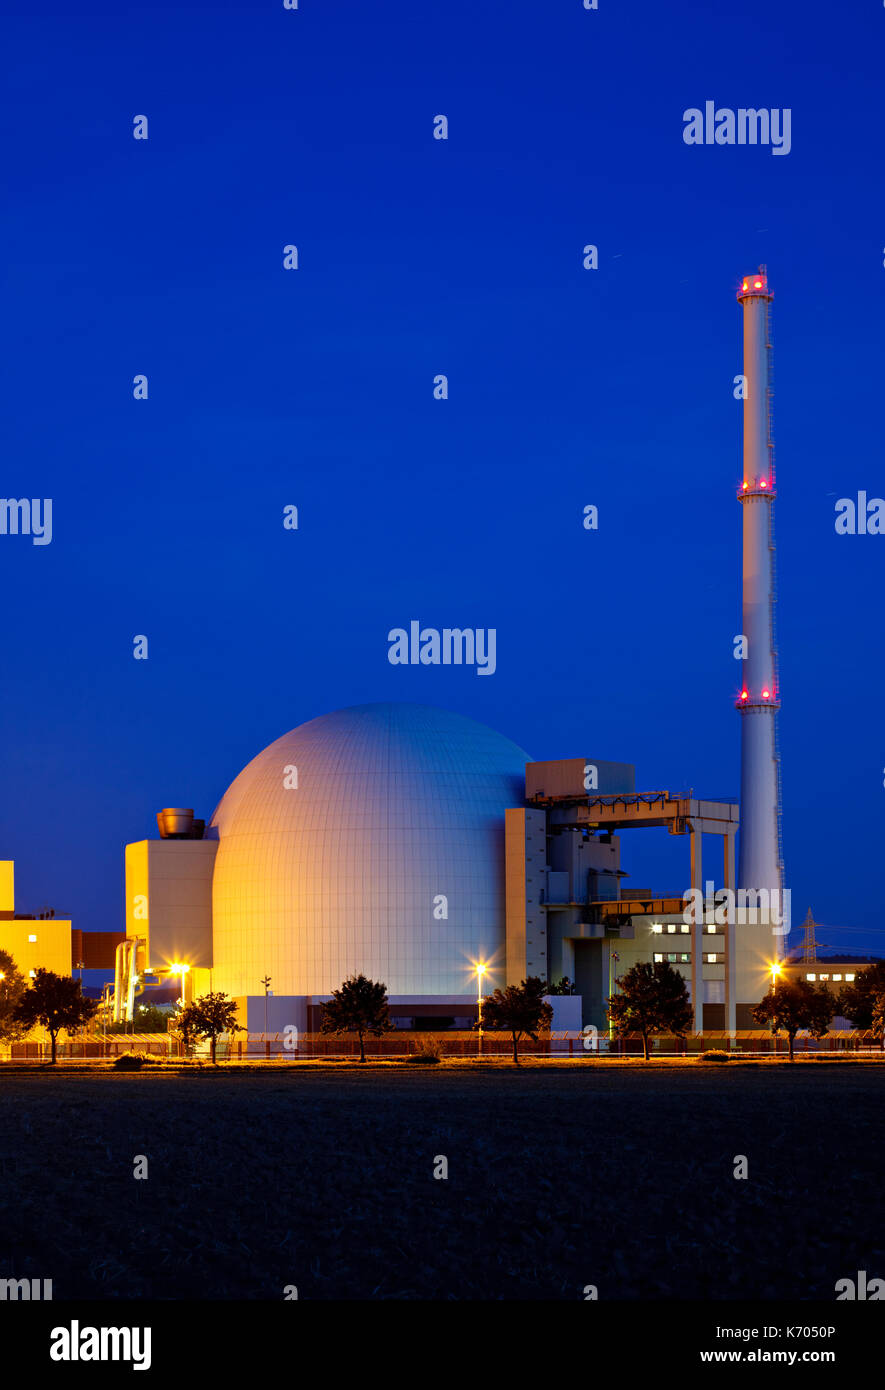 Reactor building of a large nuclear power plant with night blue sky. - Stock Image